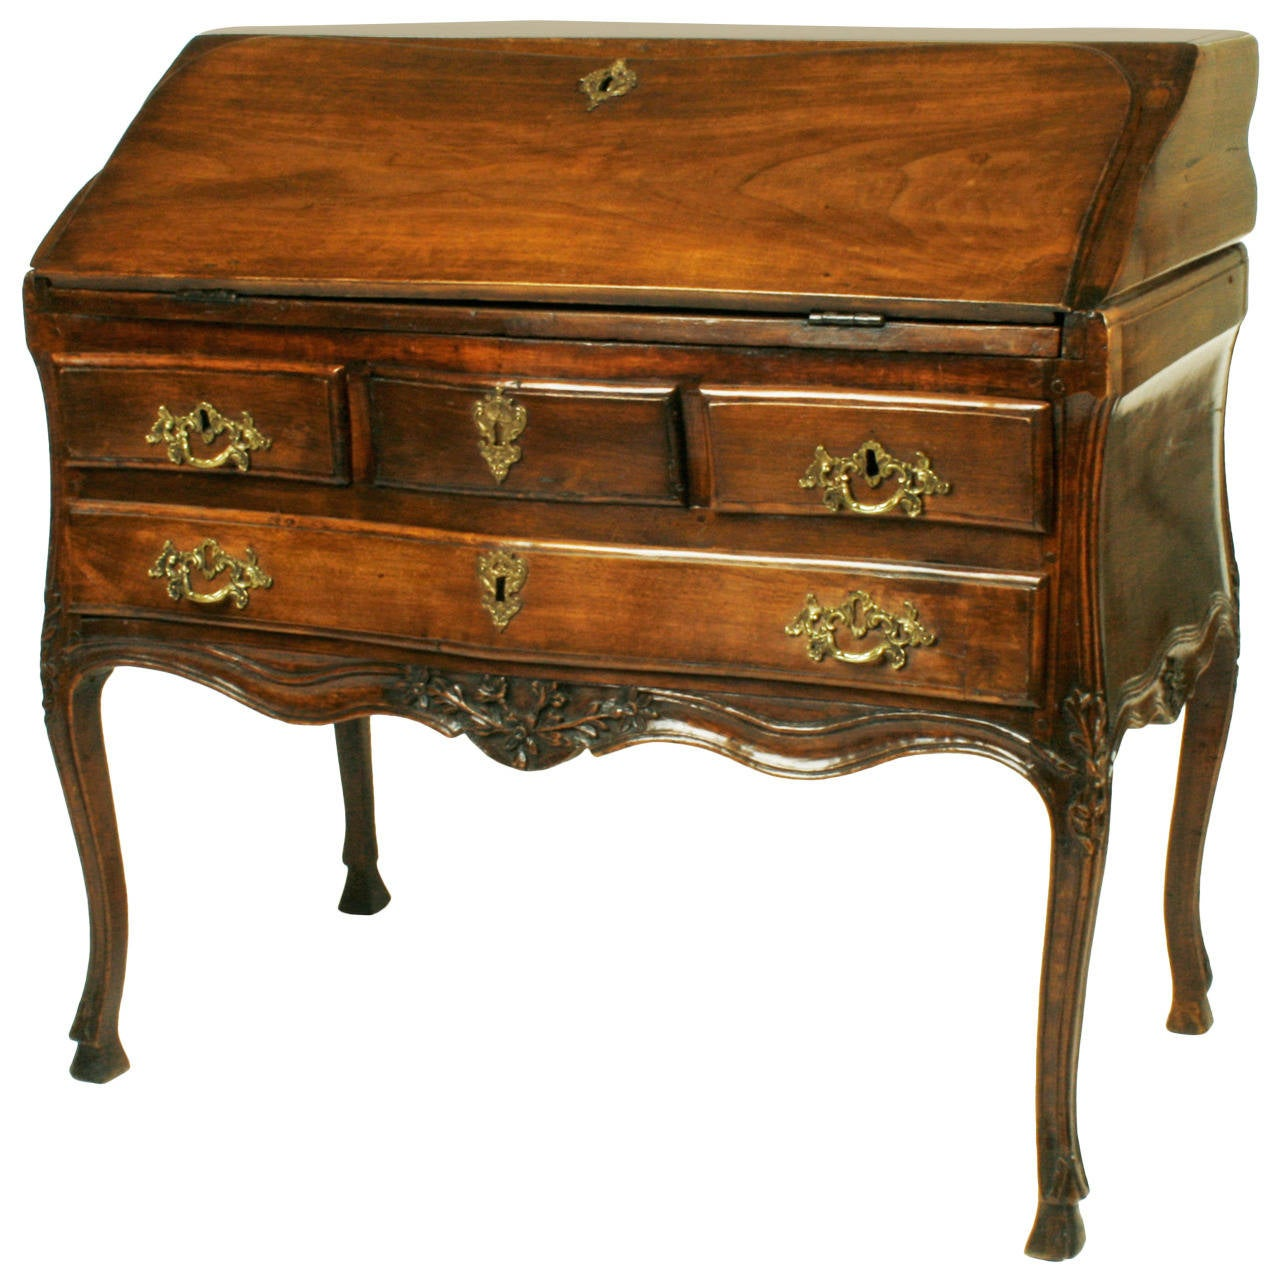 French louis xv fall front bureau c1750 at 1stdibs for Bureau louis xv